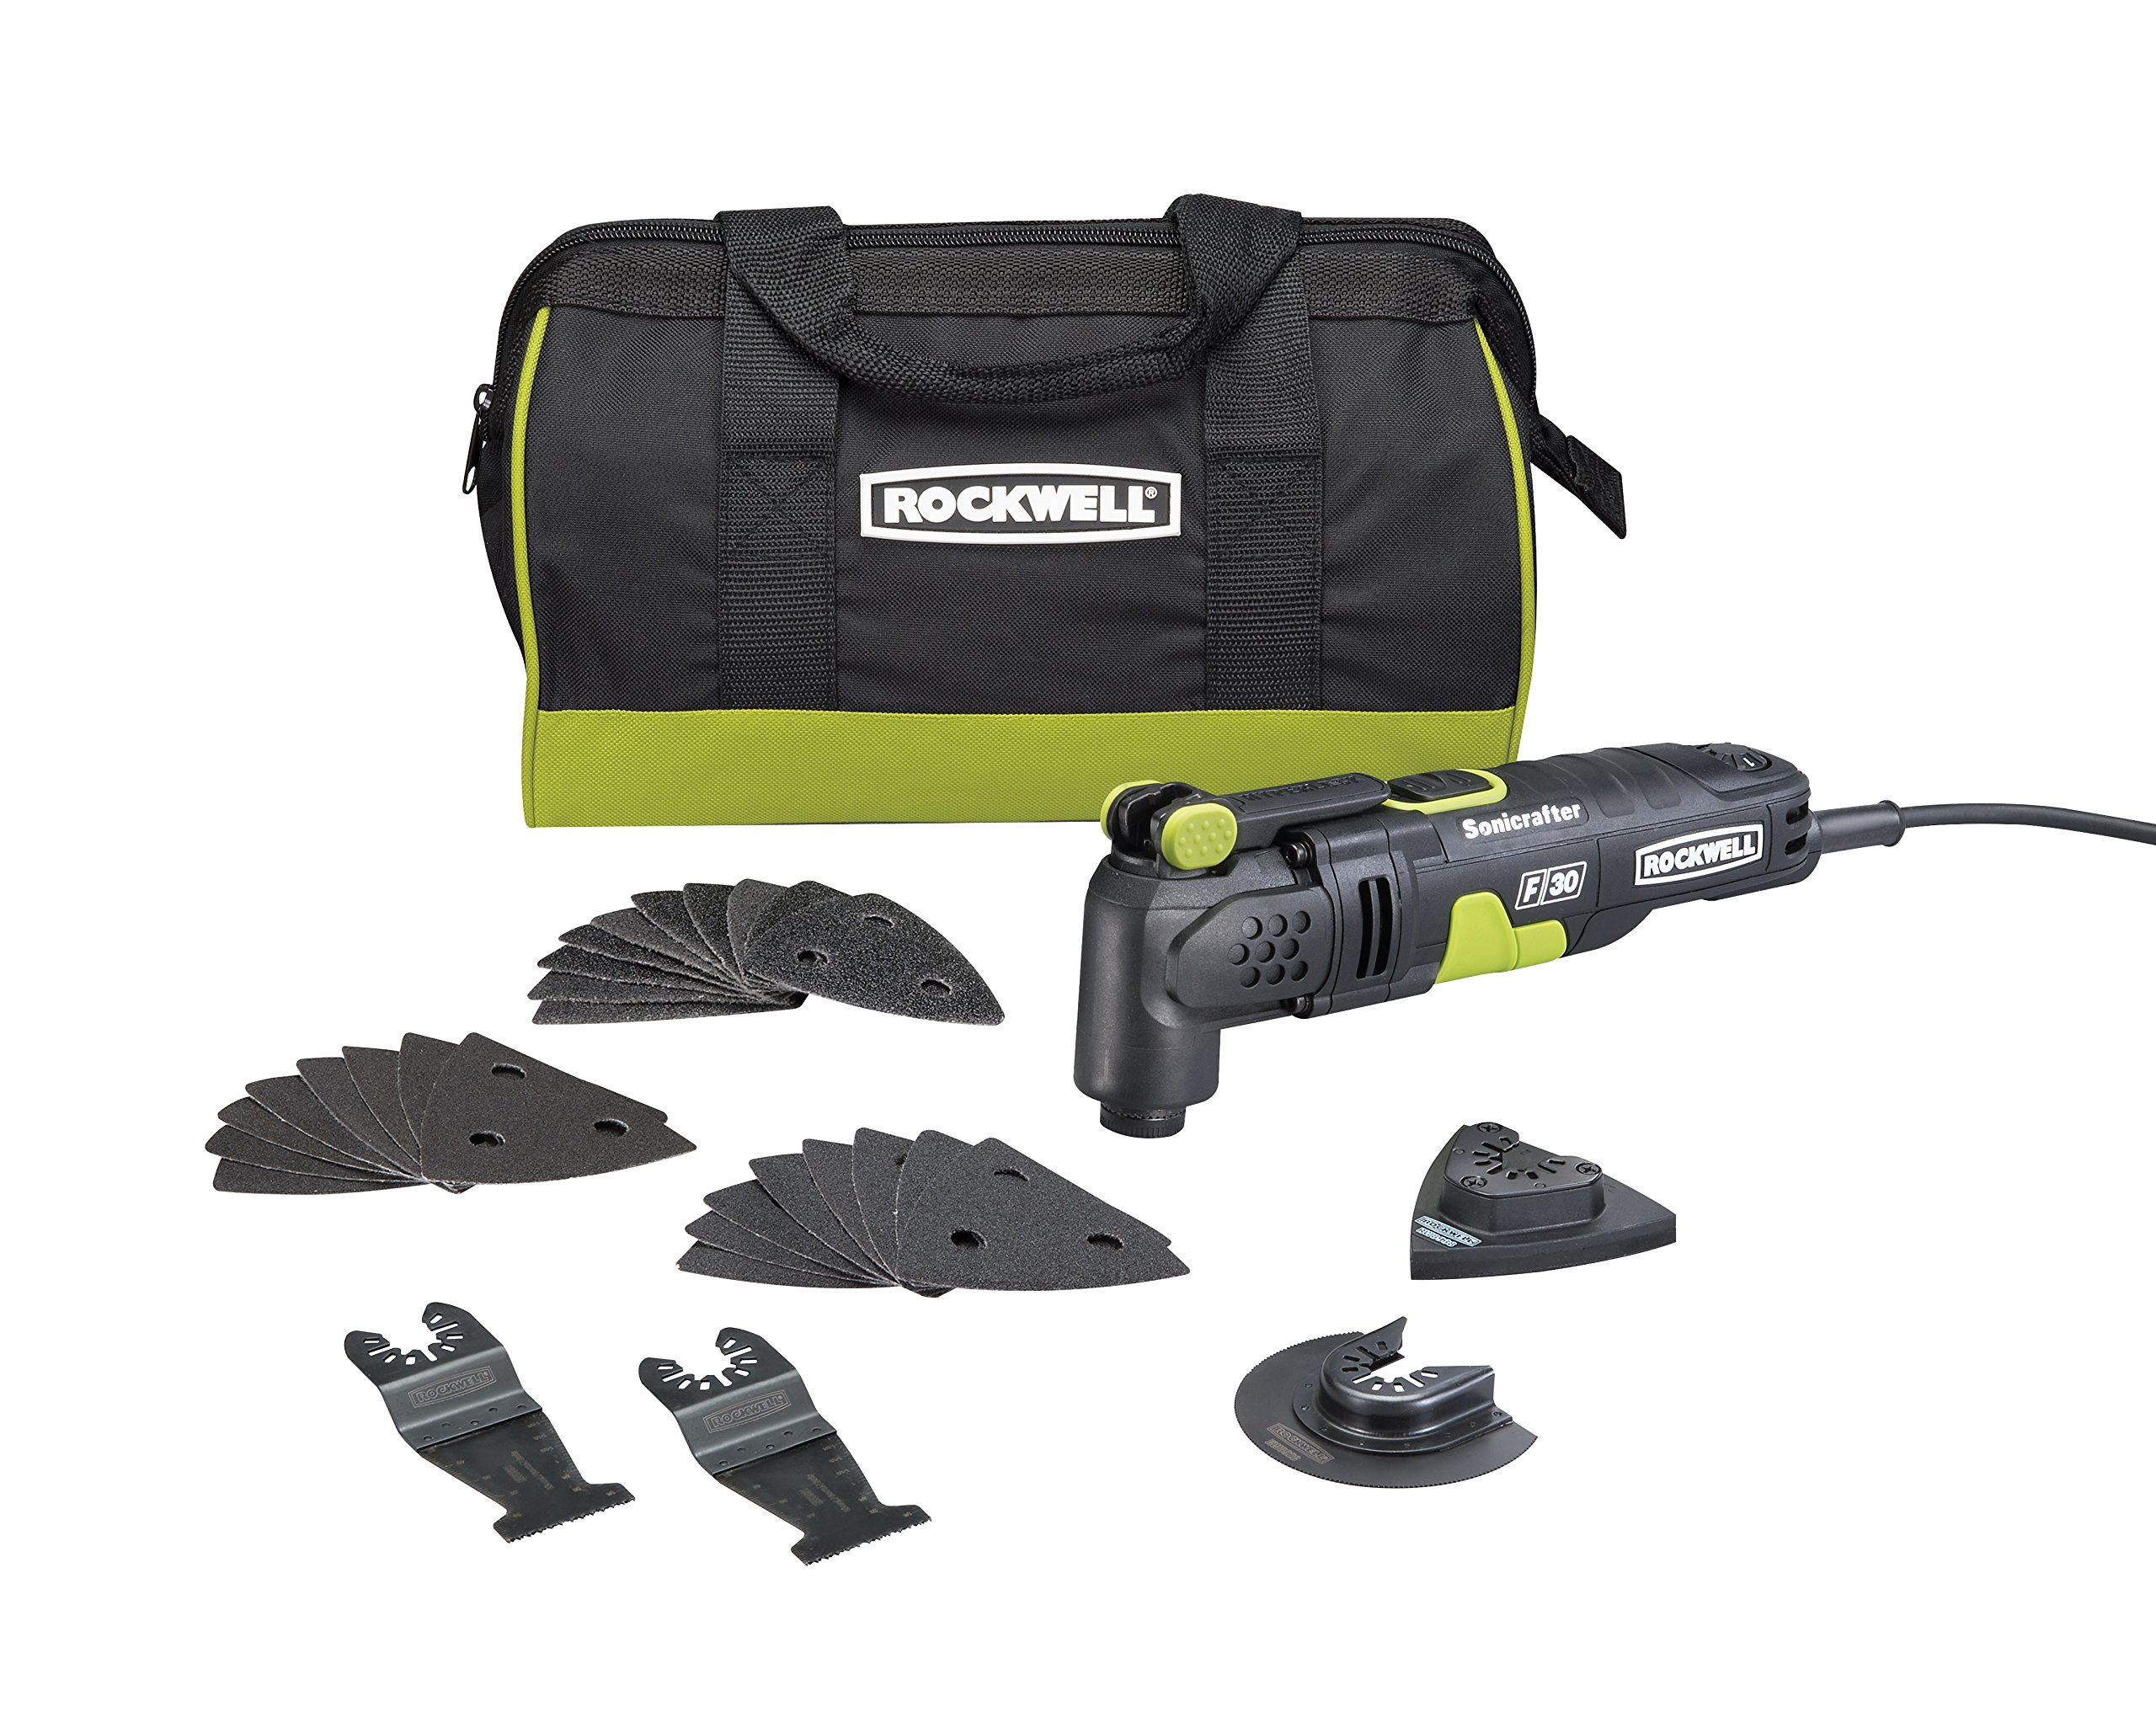 Rockwell RK5131K 3.5A Sonicrafter F30 Kit with Hyper Lock and Universal Fit System, 32-Piece